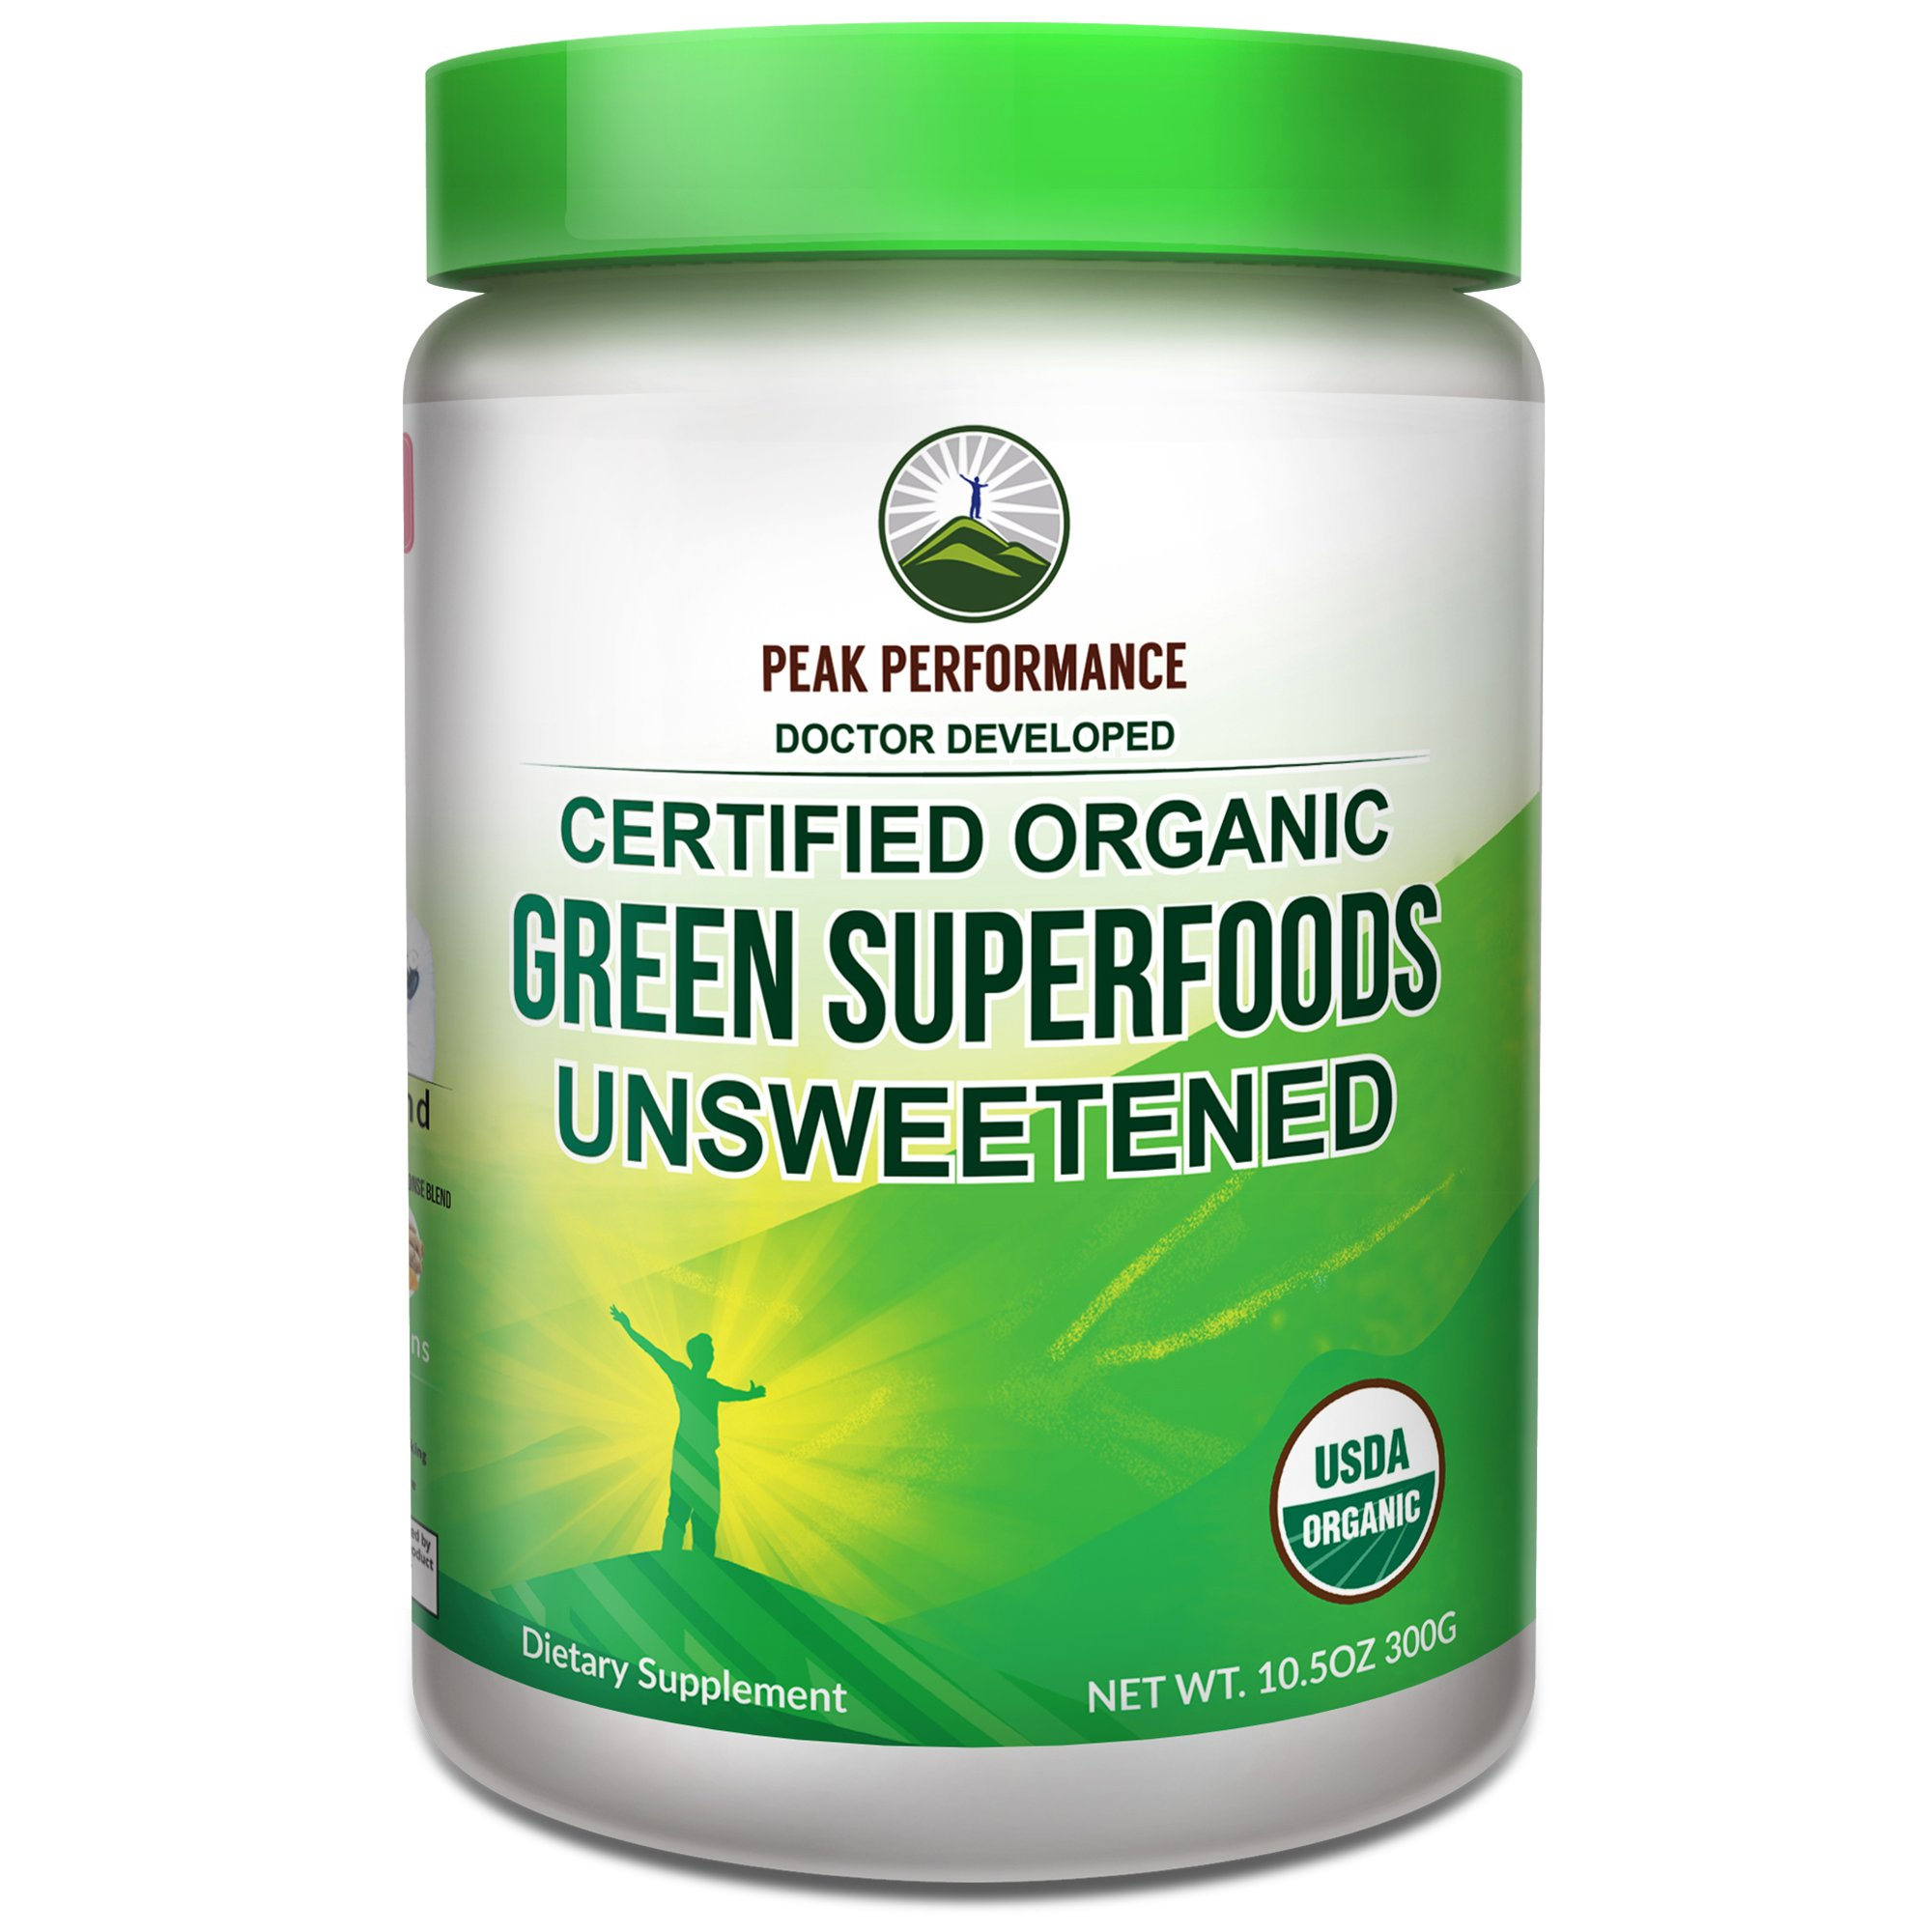 RAW UN-Sweetened Organic Greens Superfood Powder By Peak Performance. Organic Green Juice Super Food With 25+ Natural Ingredients For Max Energy & Detox. Spirulina, Spinach, Kale, Turmeric, Probiotics